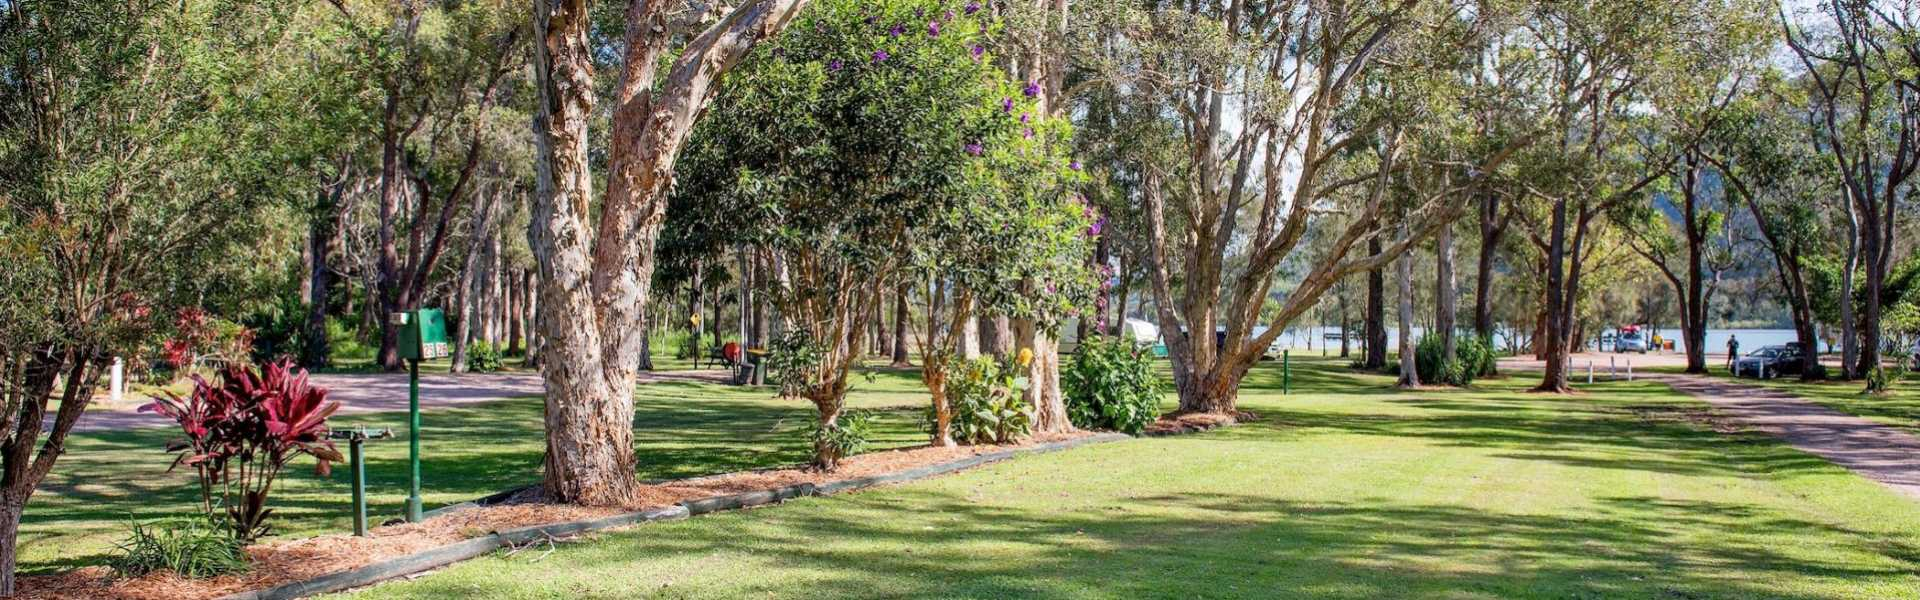 Kui Parks, Diamond Waters Caravan Park, Dunbogan, Park